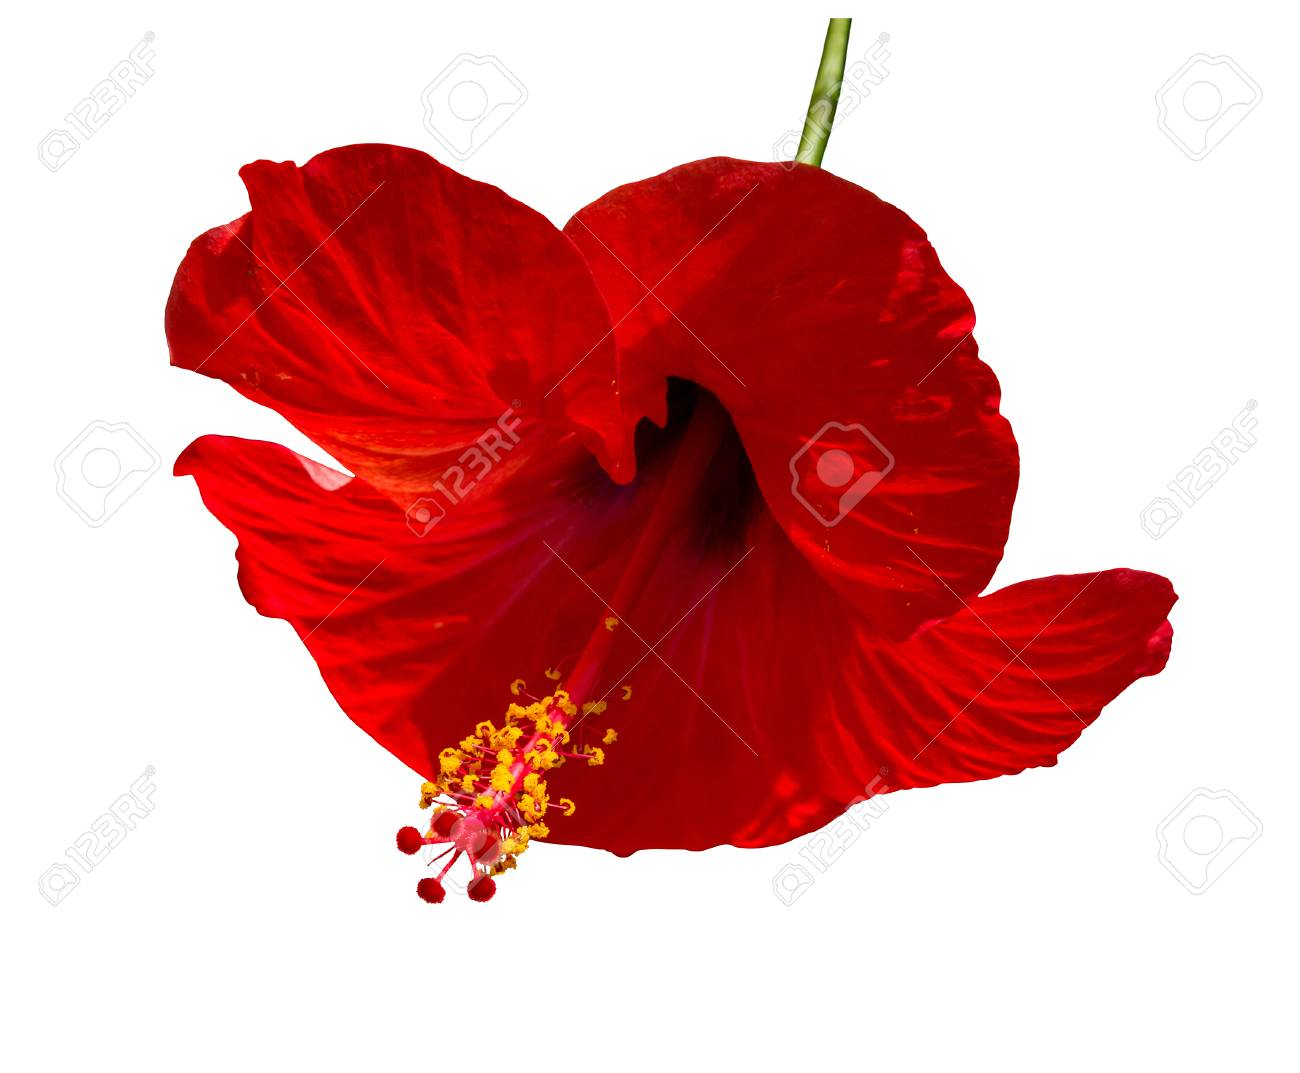 Red hibiscus flower with green stem and yellow petals isolated red hibiscus flower with green stem and yellow petals isolated on white stock photo izmirmasajfo Choice Image